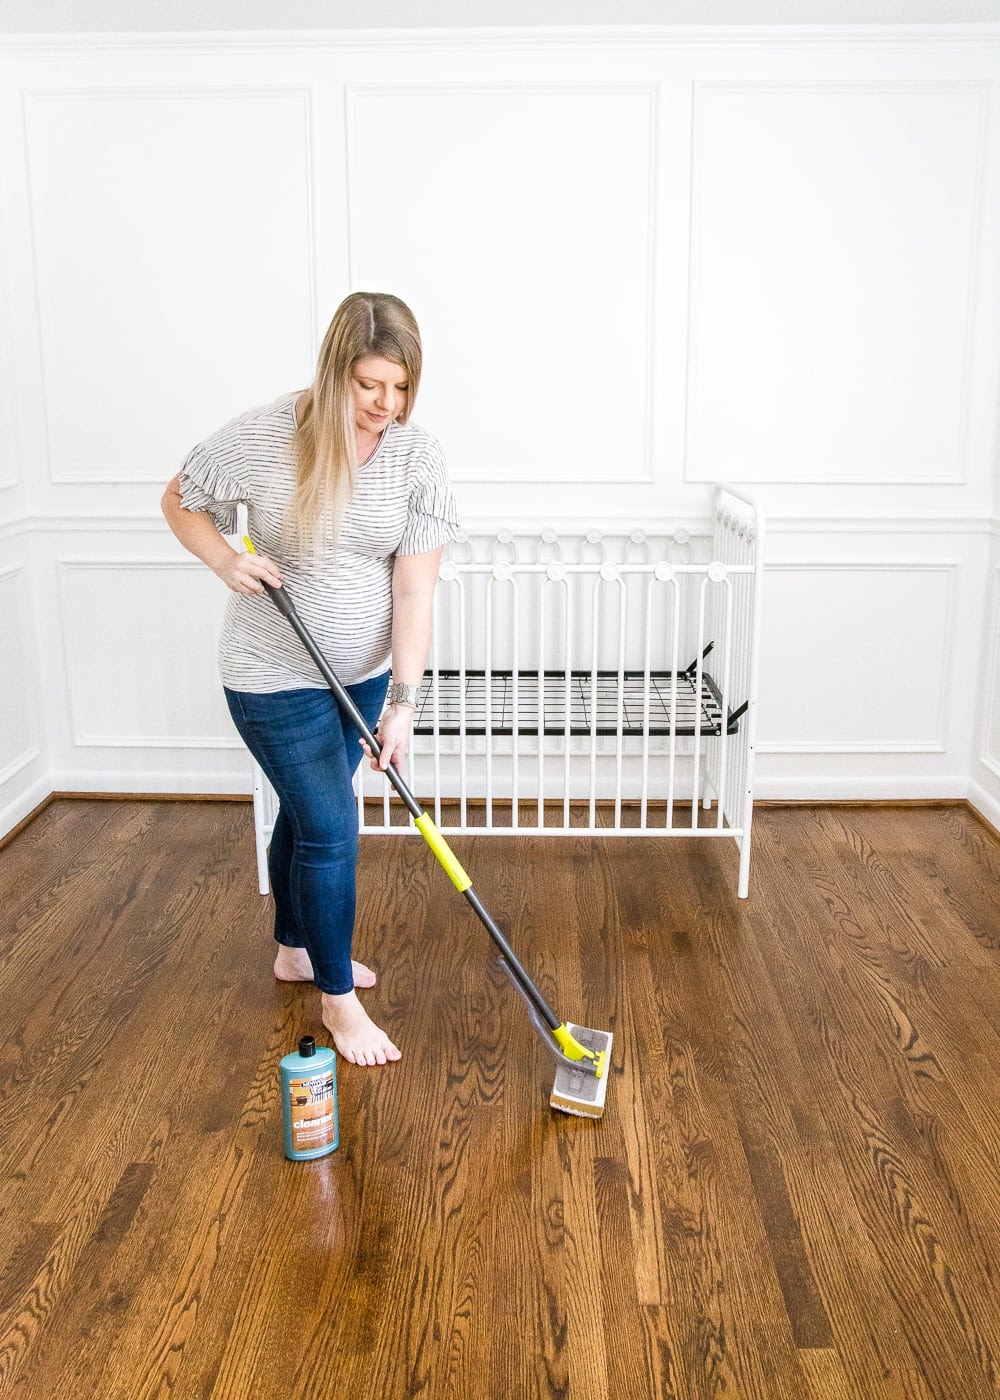 The best solution for cleaning refinished hardwood floors